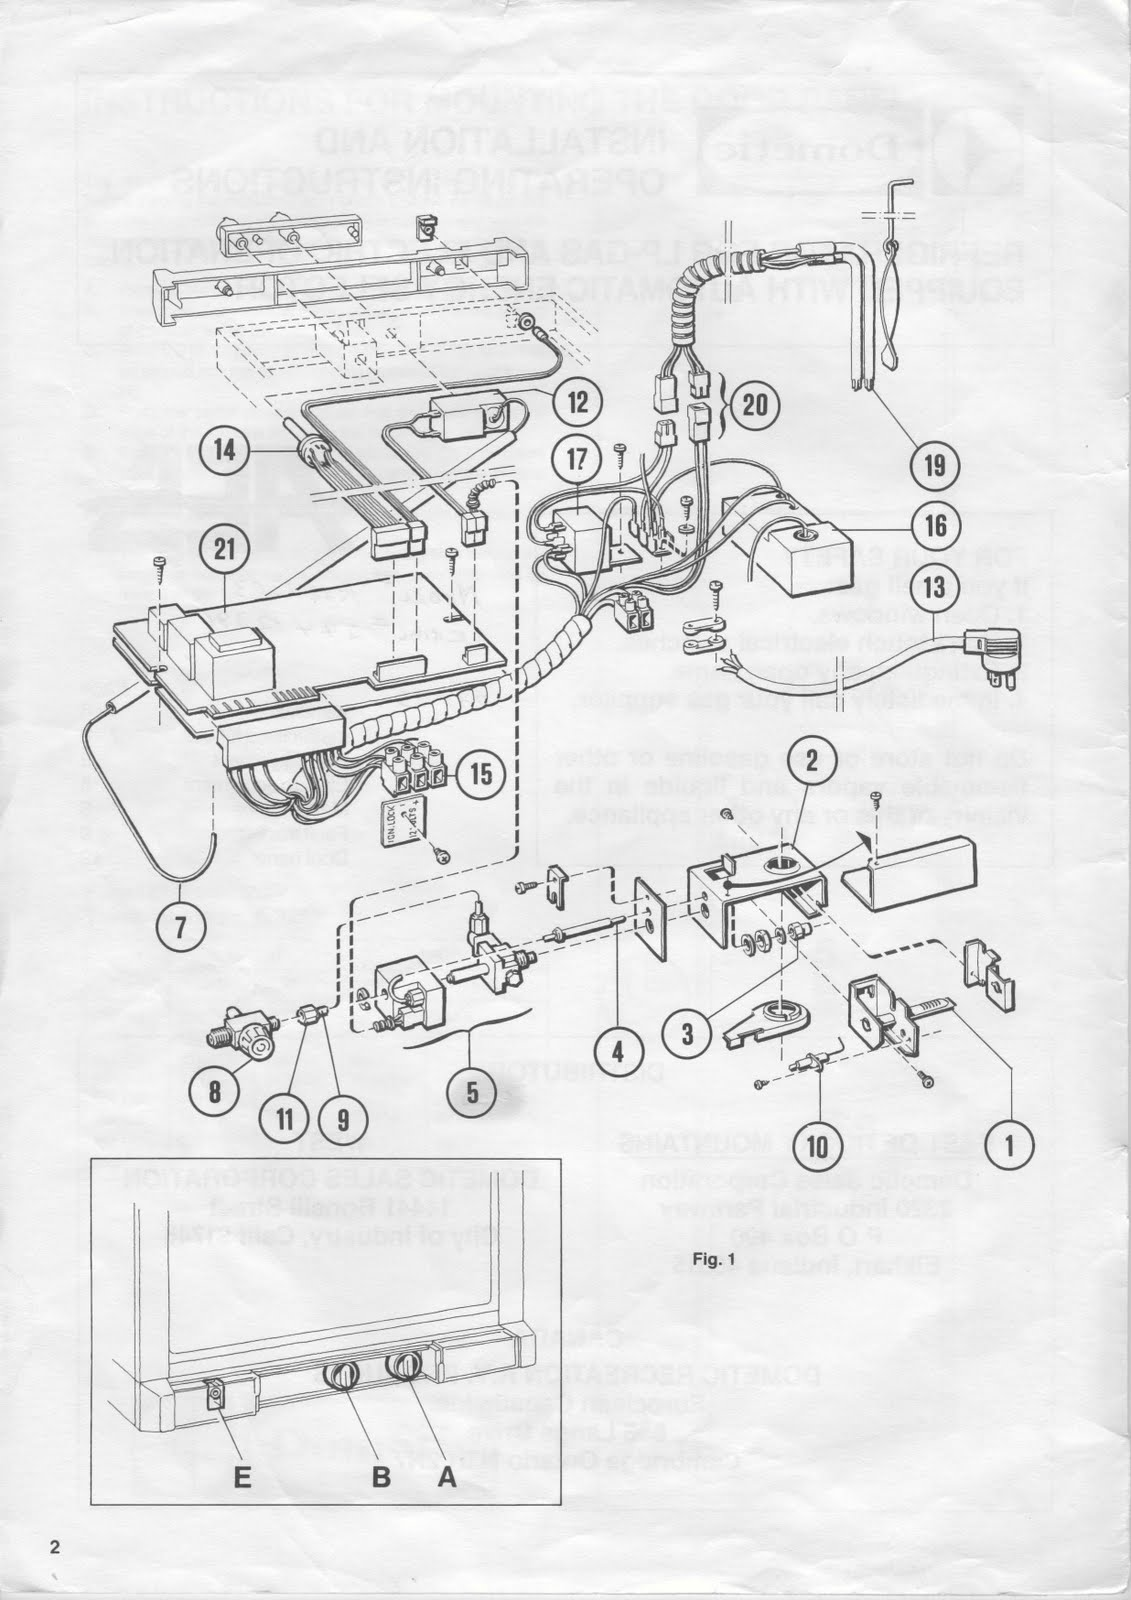 Gm Ac Wiring Diagram 1983 Fleetwood Pace Arrow Owners Manuals Dometic